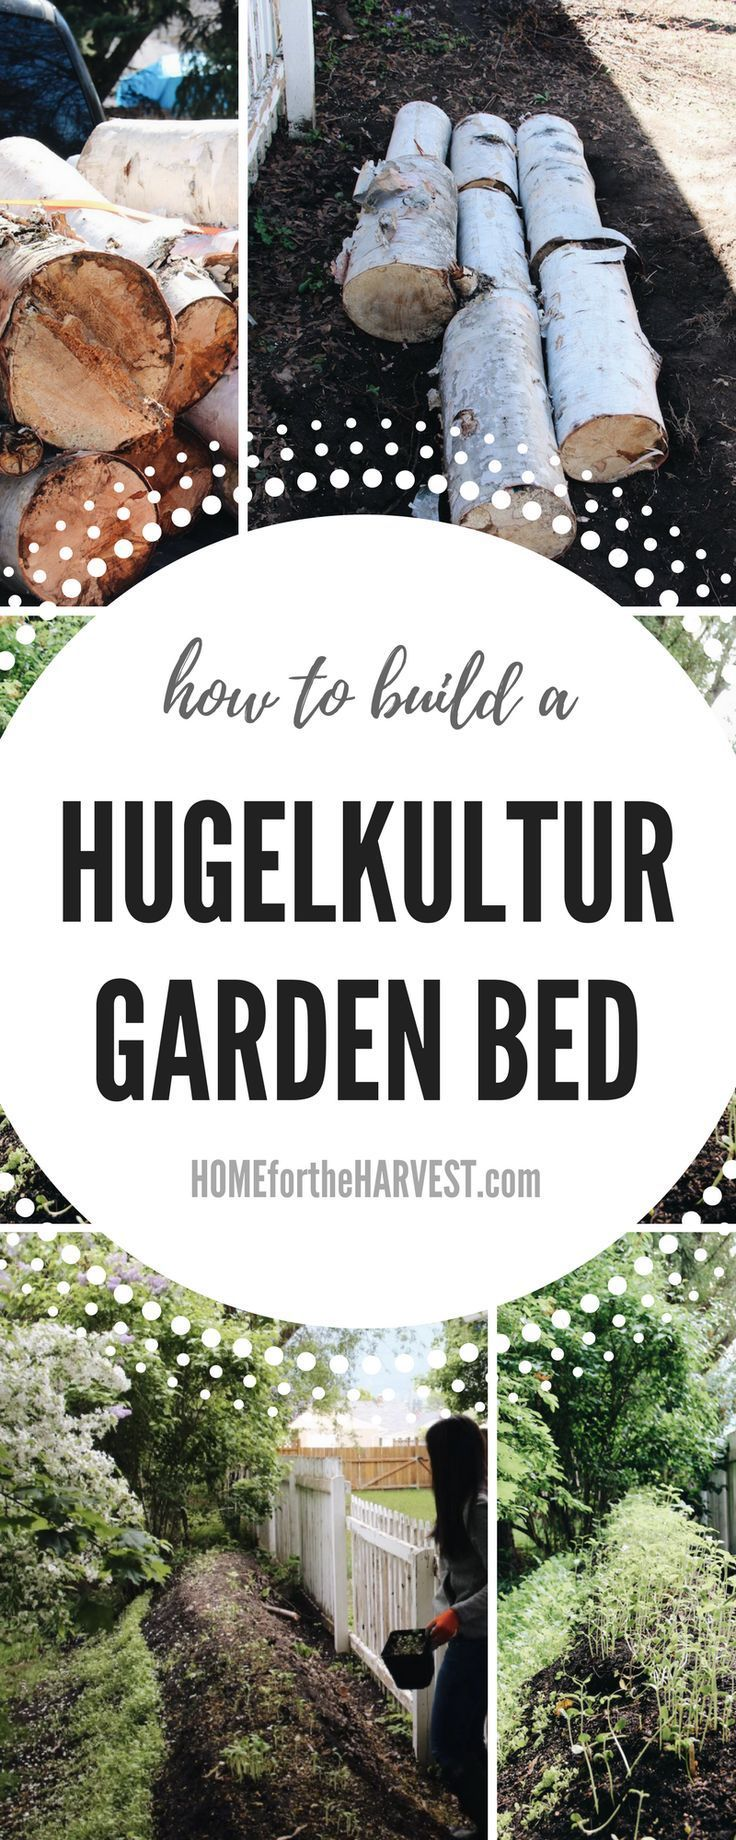 This tutorial (+free printable) will teach you exactly how to create a hugelkultur raised garden bed in your backyard! Hugelkultur beds are the perfect way to recycle unused wood to create an in-place composting system which also grows healthy plants. It'